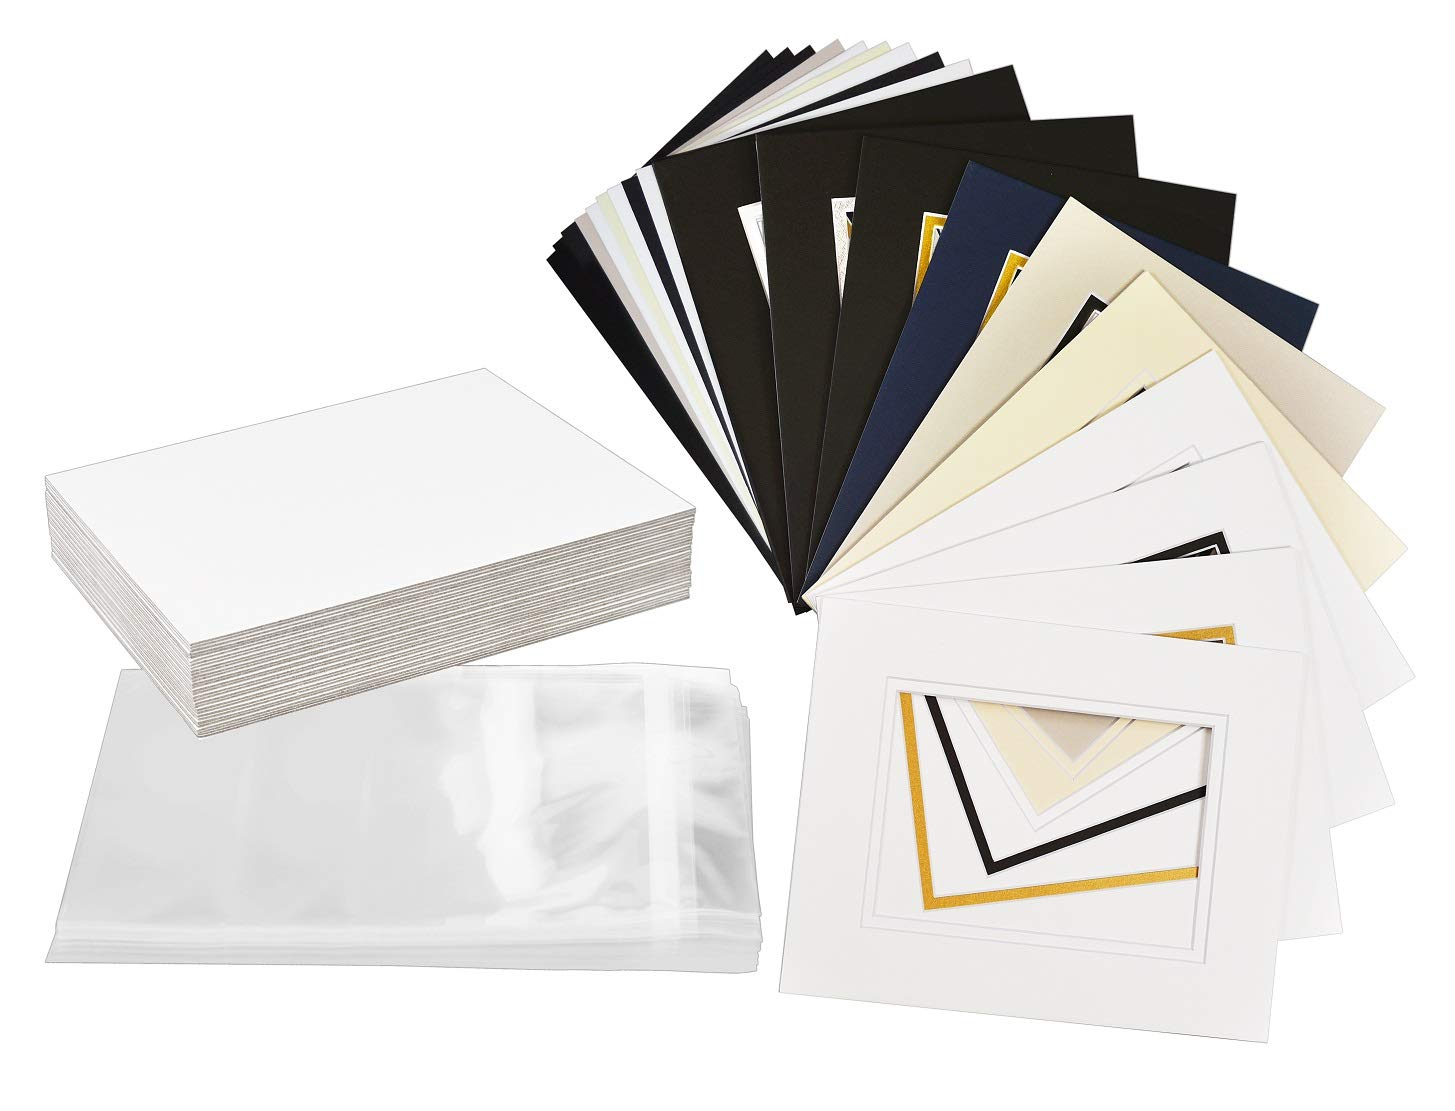 Golden State Art, Pack of 25 Complete Set, Mix Colors 8x10 Double Mat for 5x7 Photo Pictures with White Core Bevel Cut Mattes. Includes 25 Acid Free Double Mats & 25 Backing Board & 25 Clear Bags by Golden State Art